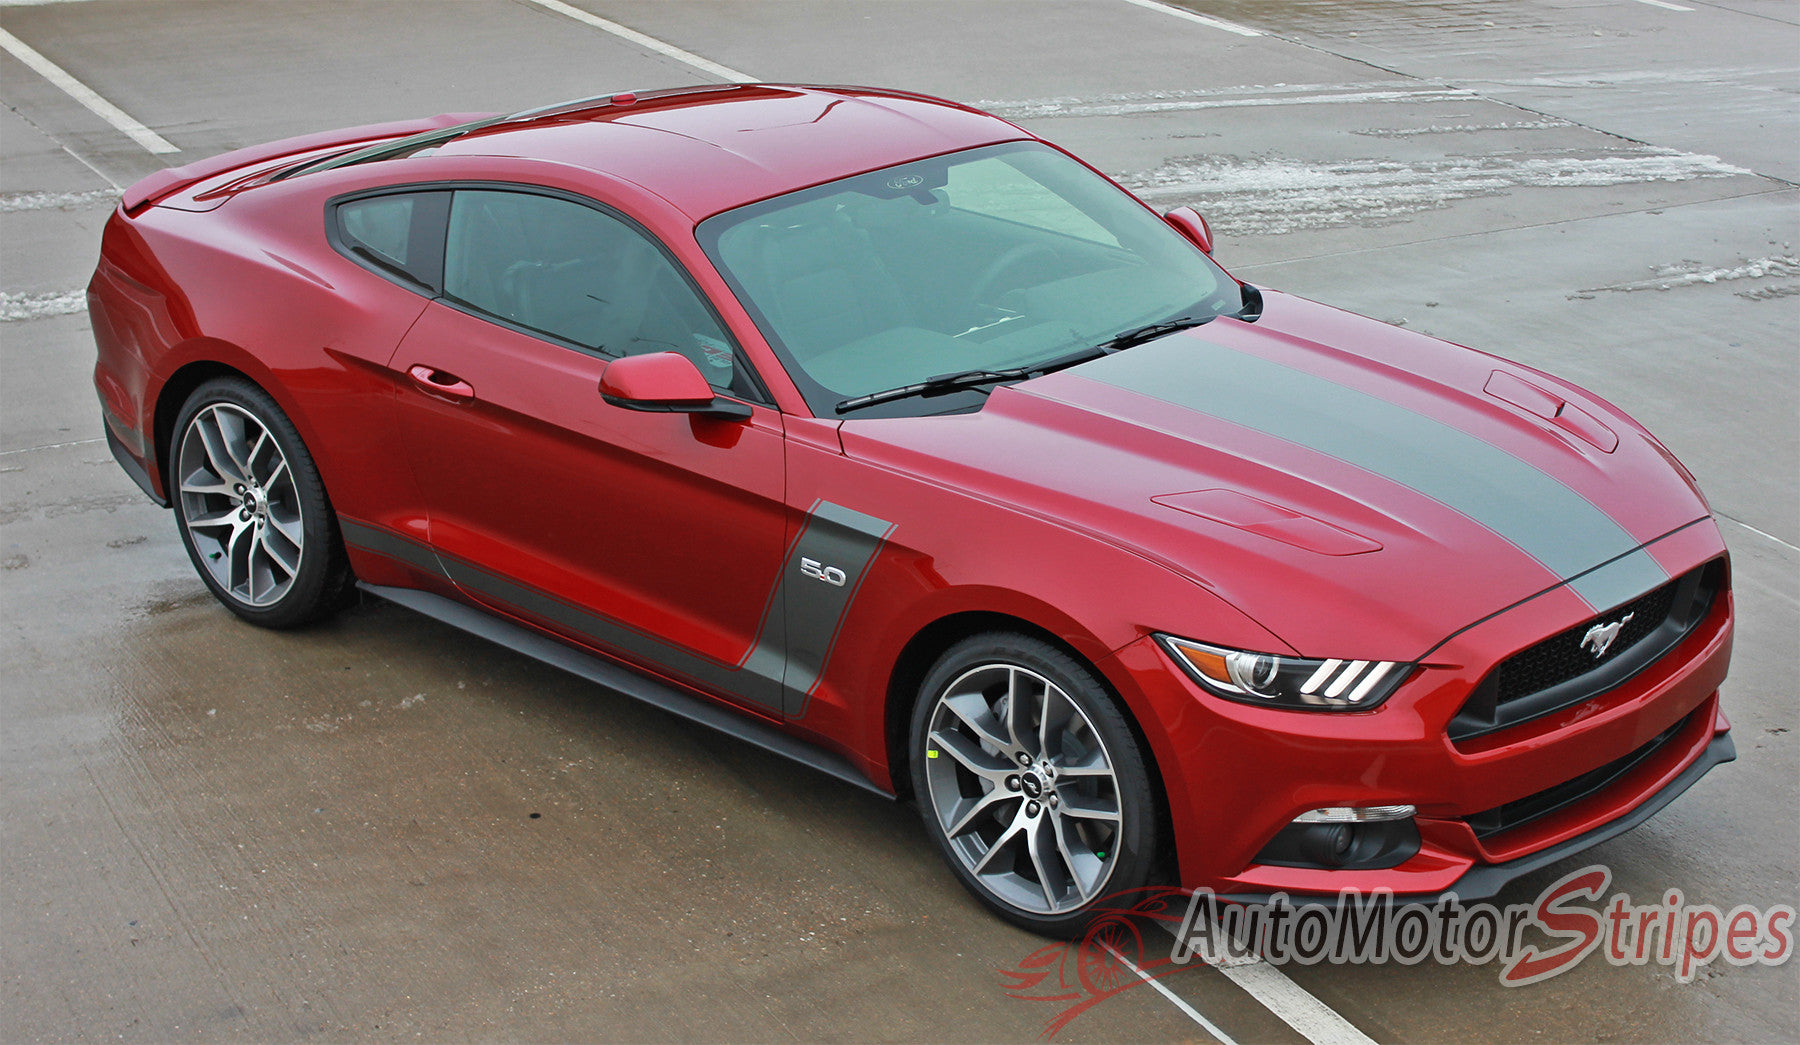 Ford Mustang Vinyl Graphics Decals Stripes Kits Packages for 2009 2010 2011 2012 2013 2014 2015 2016 2017